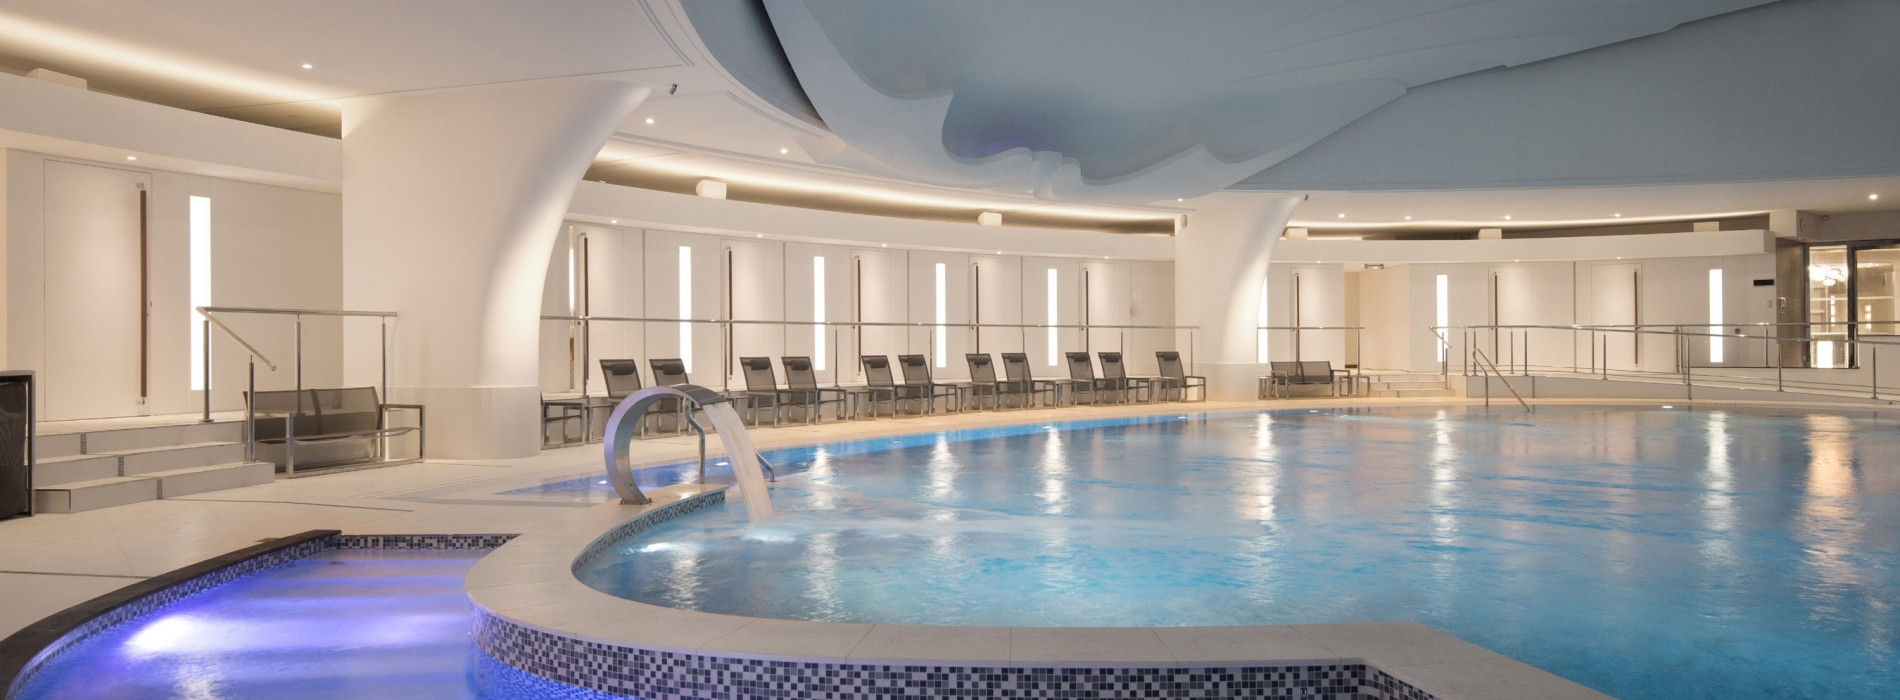 Enjoy Thermes Marins Spa Experience in Monaco